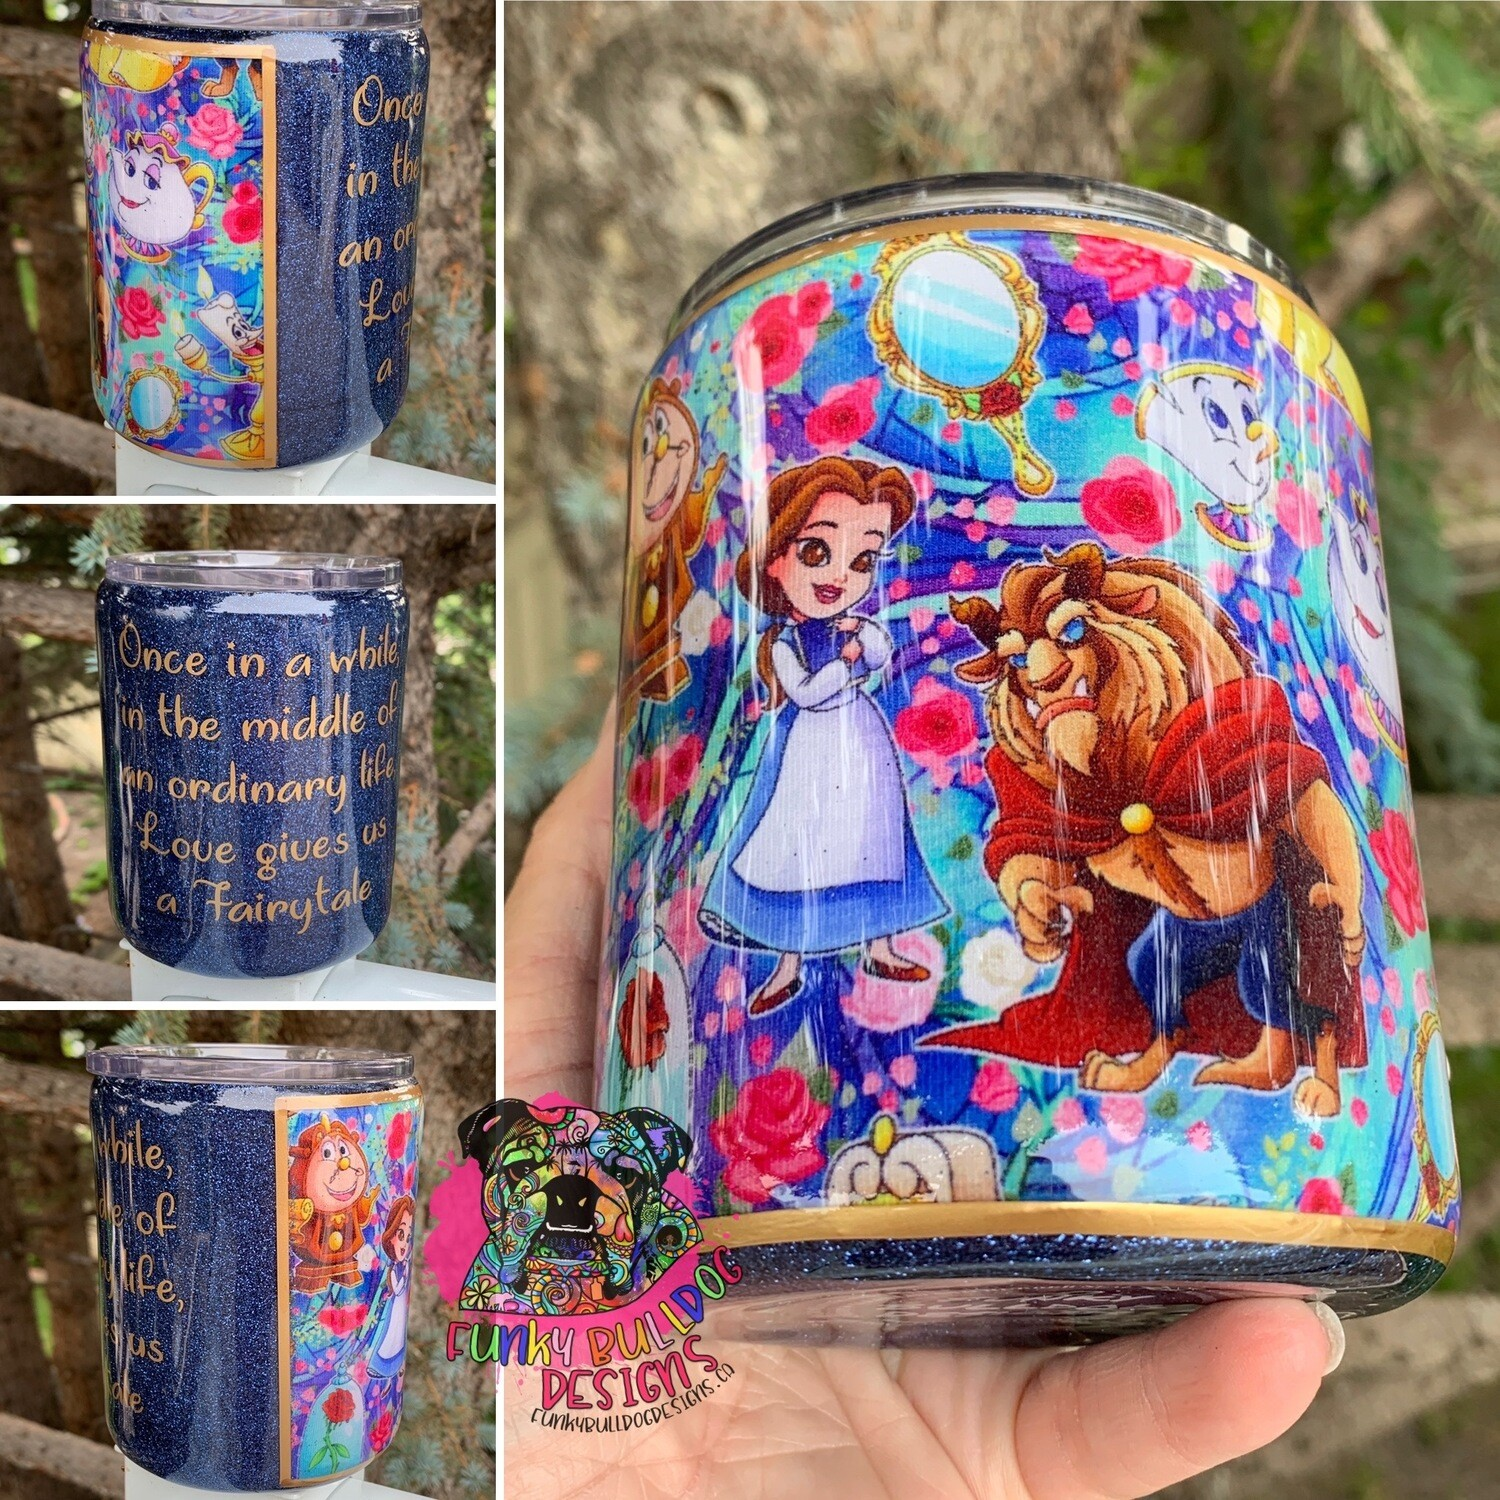 14oz stainless steel low ball fabric and glitter tumbler - Be our guest